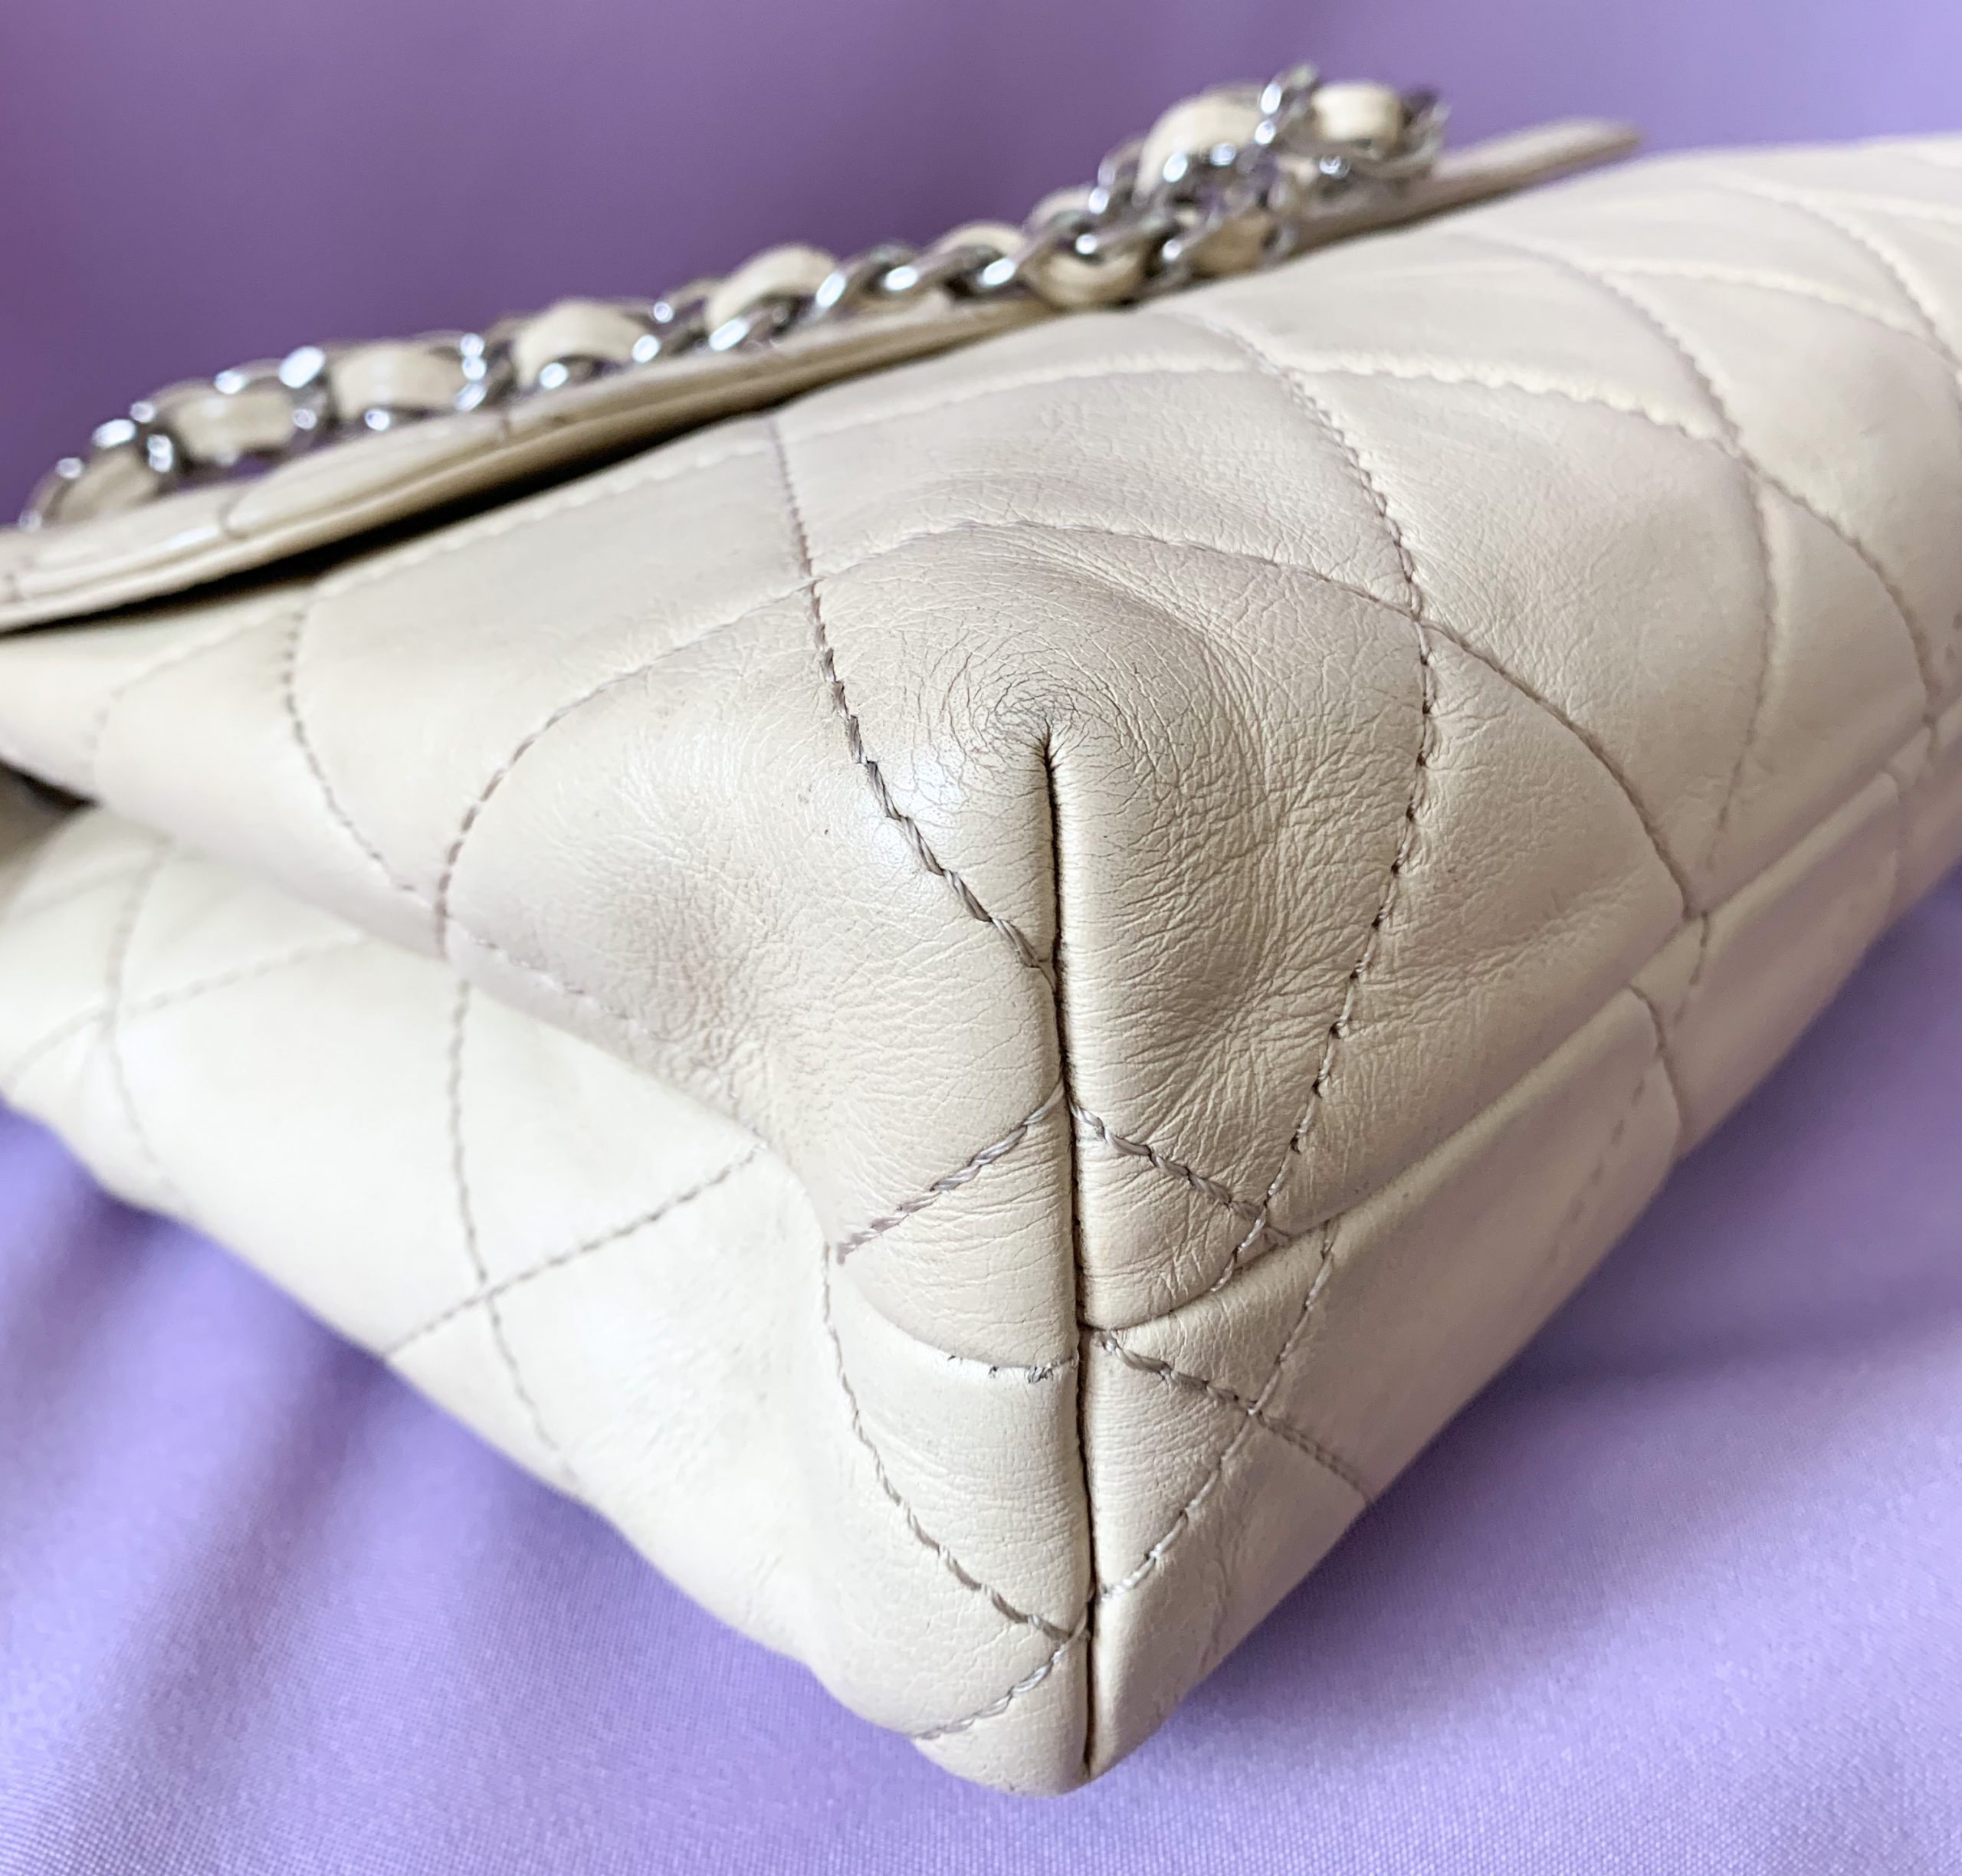 Chanel Nude Quilted Leather Flap Bag - Got Ur Bag